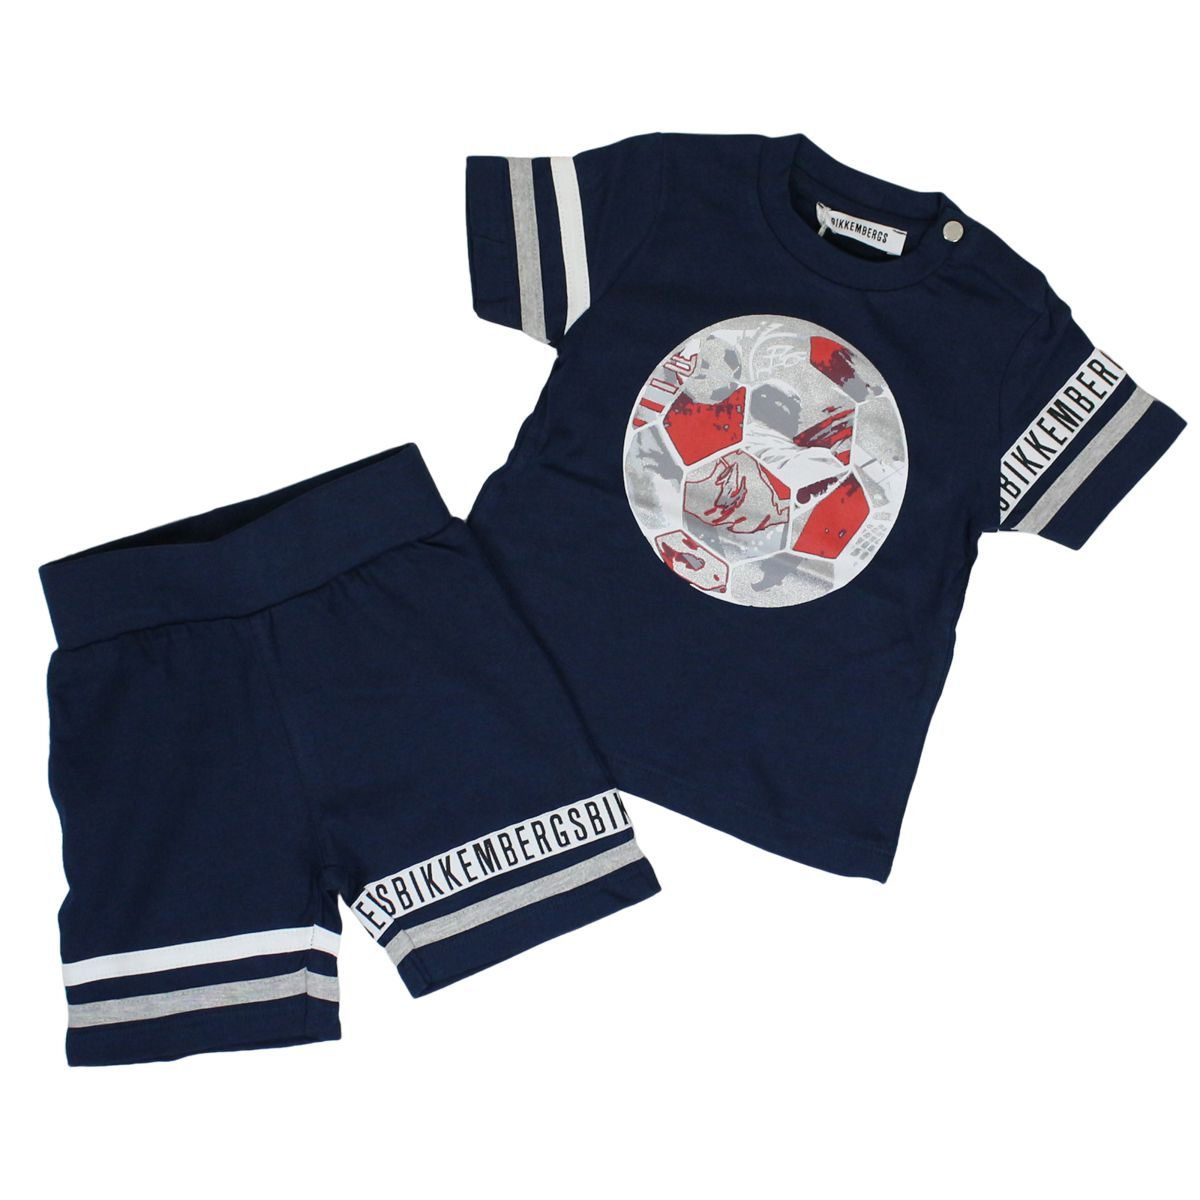 Complete with t-shirt and trousers Blue BIKKEMBERGS